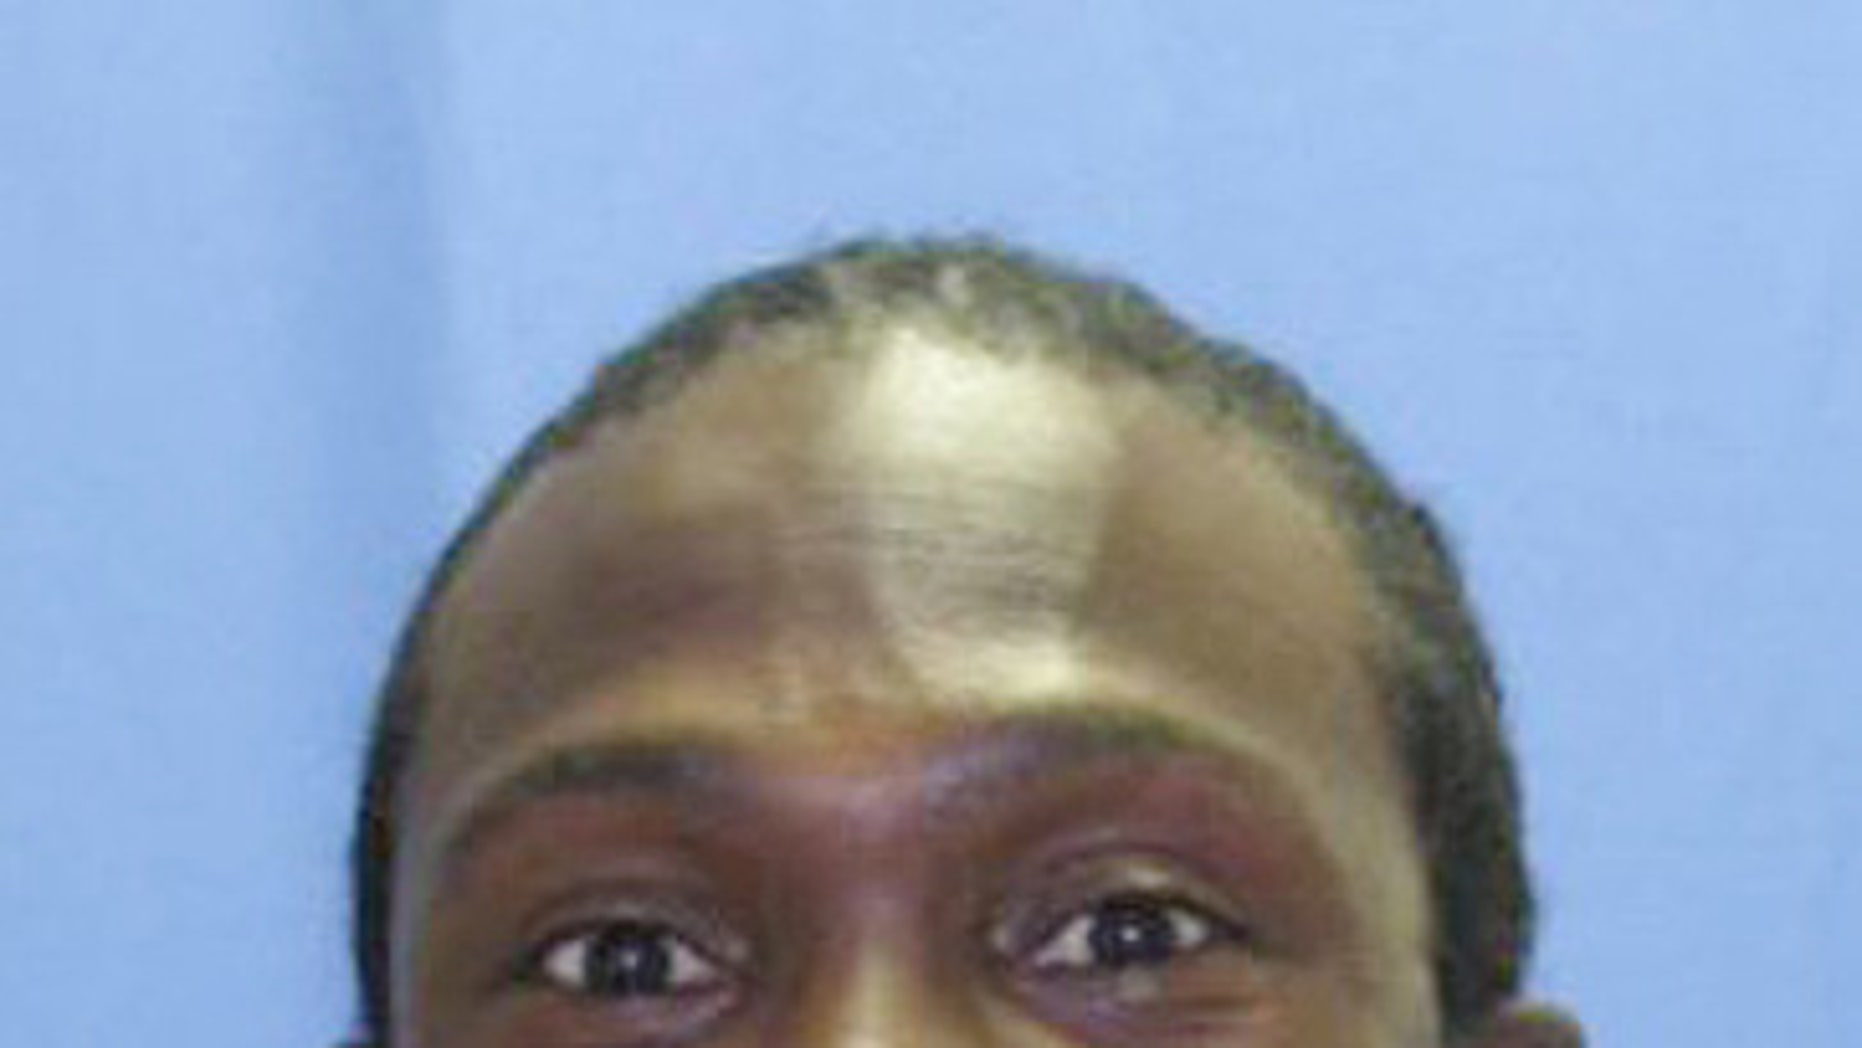 This is a Mississippi Department of Public Safety provided undated state driver's license photograph of Andrew McClinton, of Leland, Miss., who was arrested by the Greenville Police Department, Wednesday, Dec. 21, 2016 in Greenville , Miss., in connection with the Nov. 1, 2016 fire at Greenville's Hopewell Missionary Baptist Church.